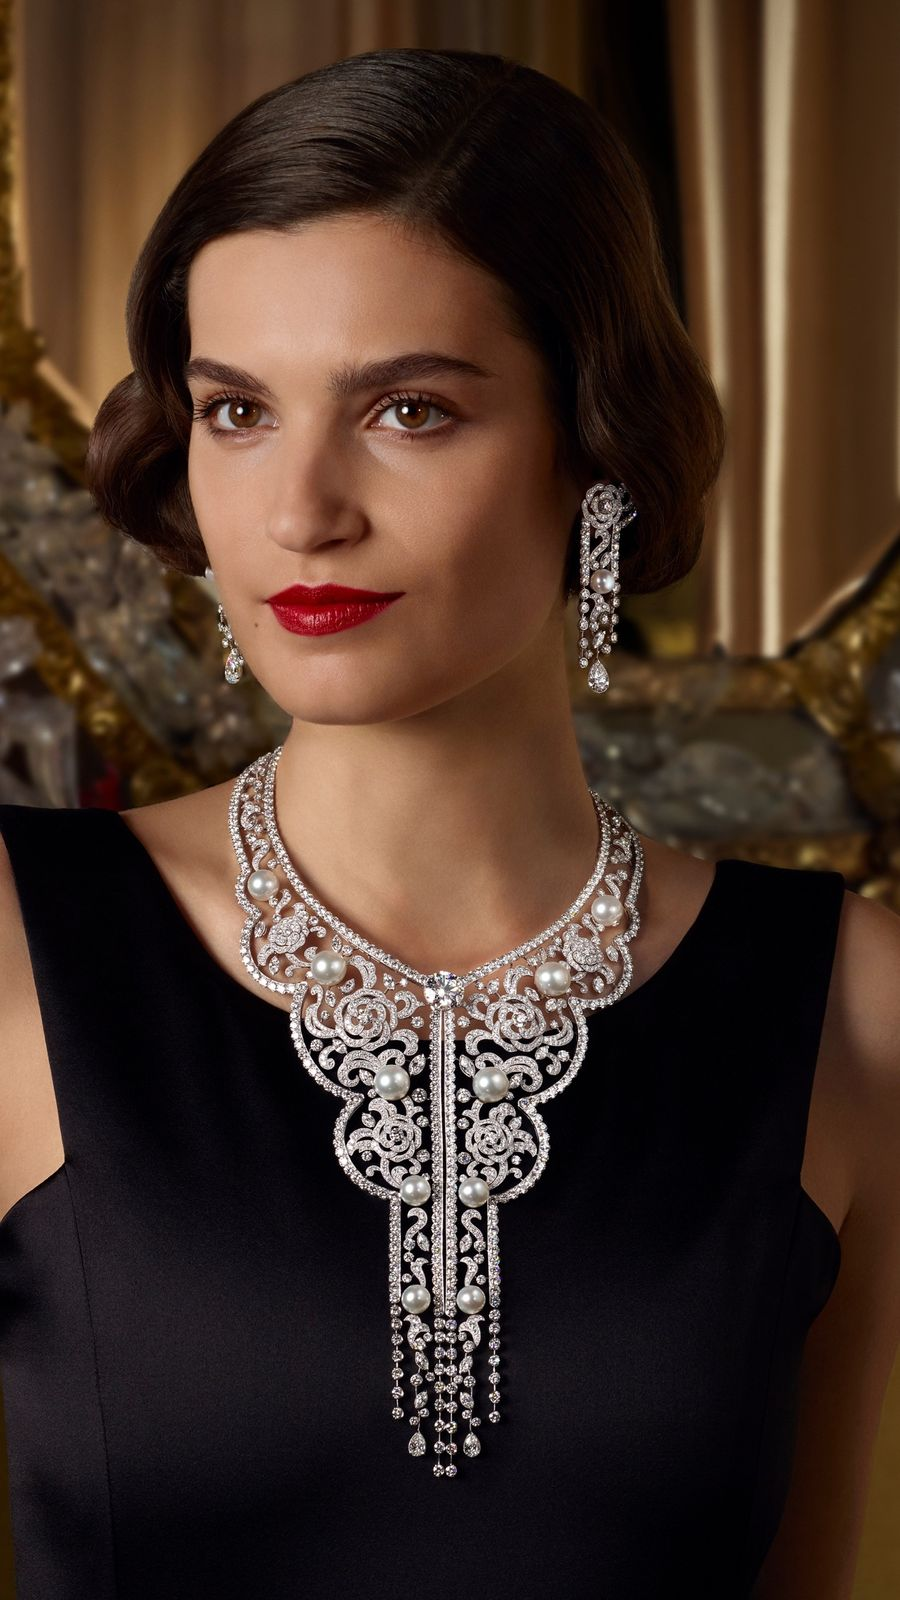 A model wearing the Sarafane necklace and earrings